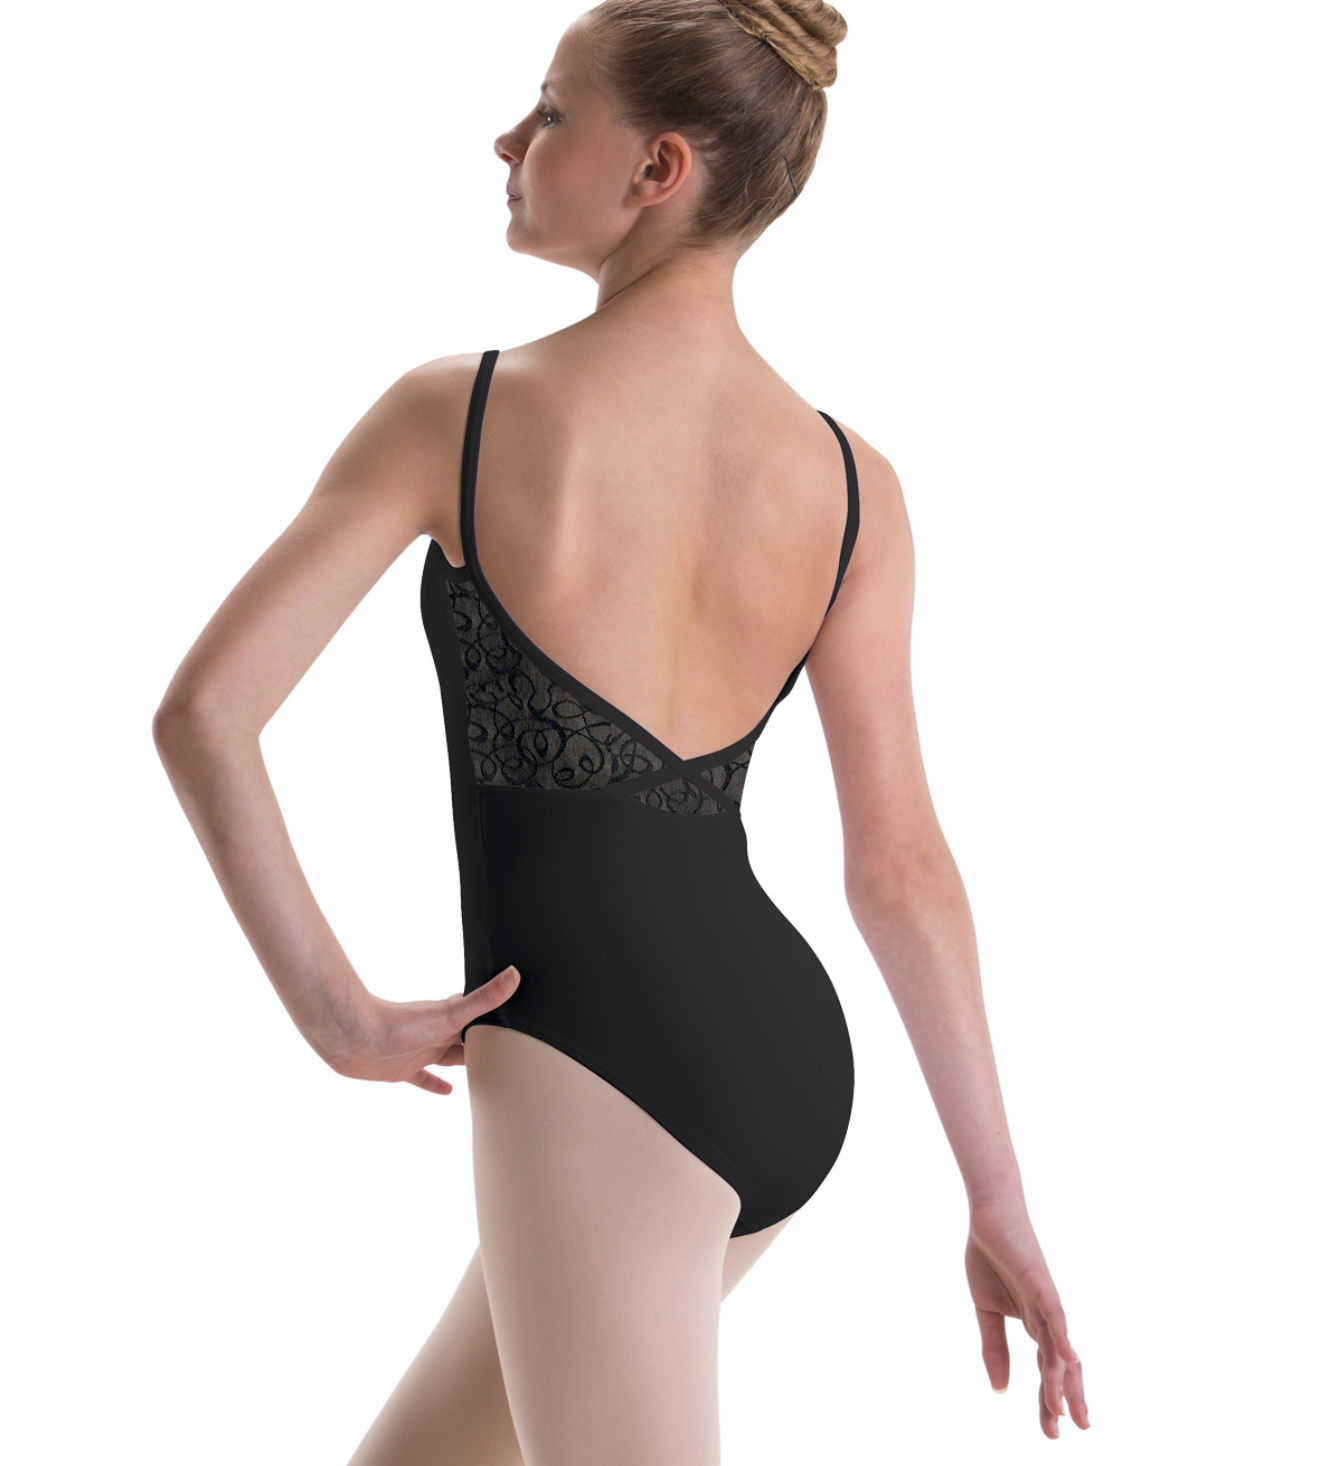 Motionwear Camisole Leotard with Elegant Lace Mesh - 2530